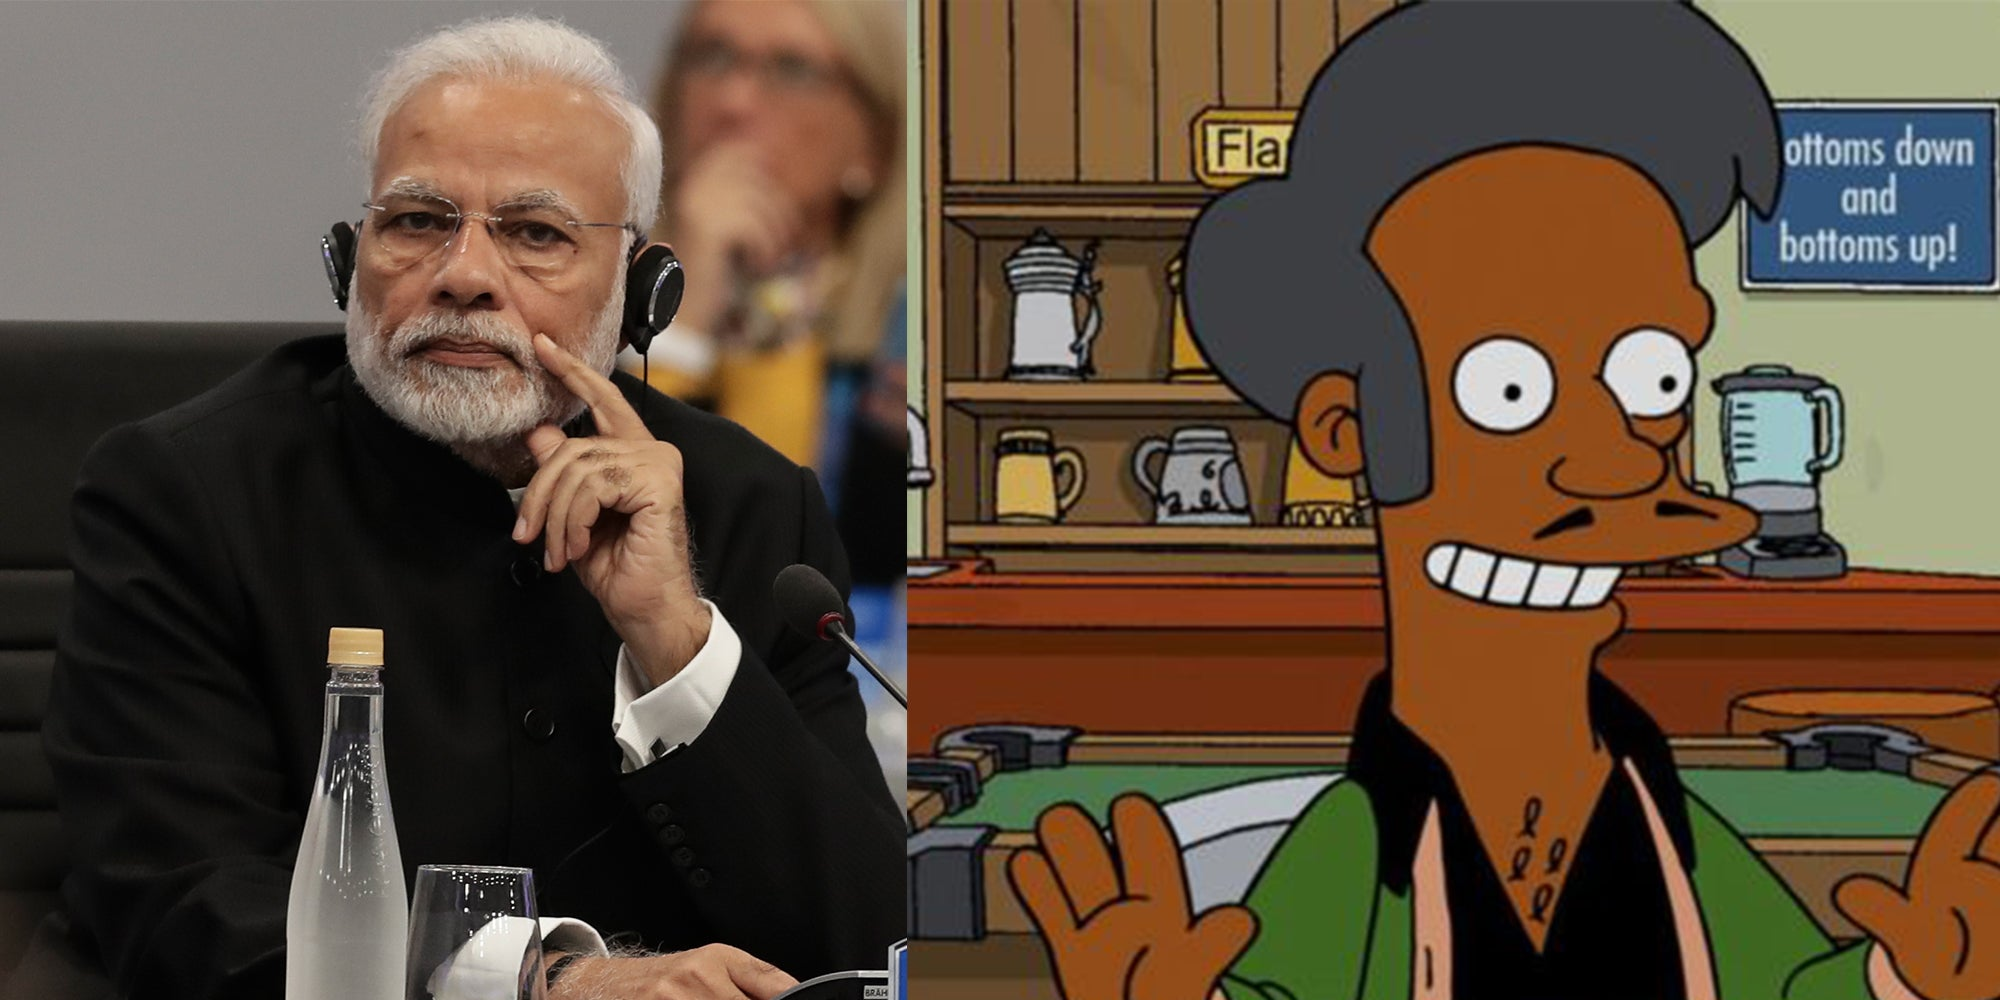 A TV channel is facing criticism after comparing India's PM to Apu from The Simpsons